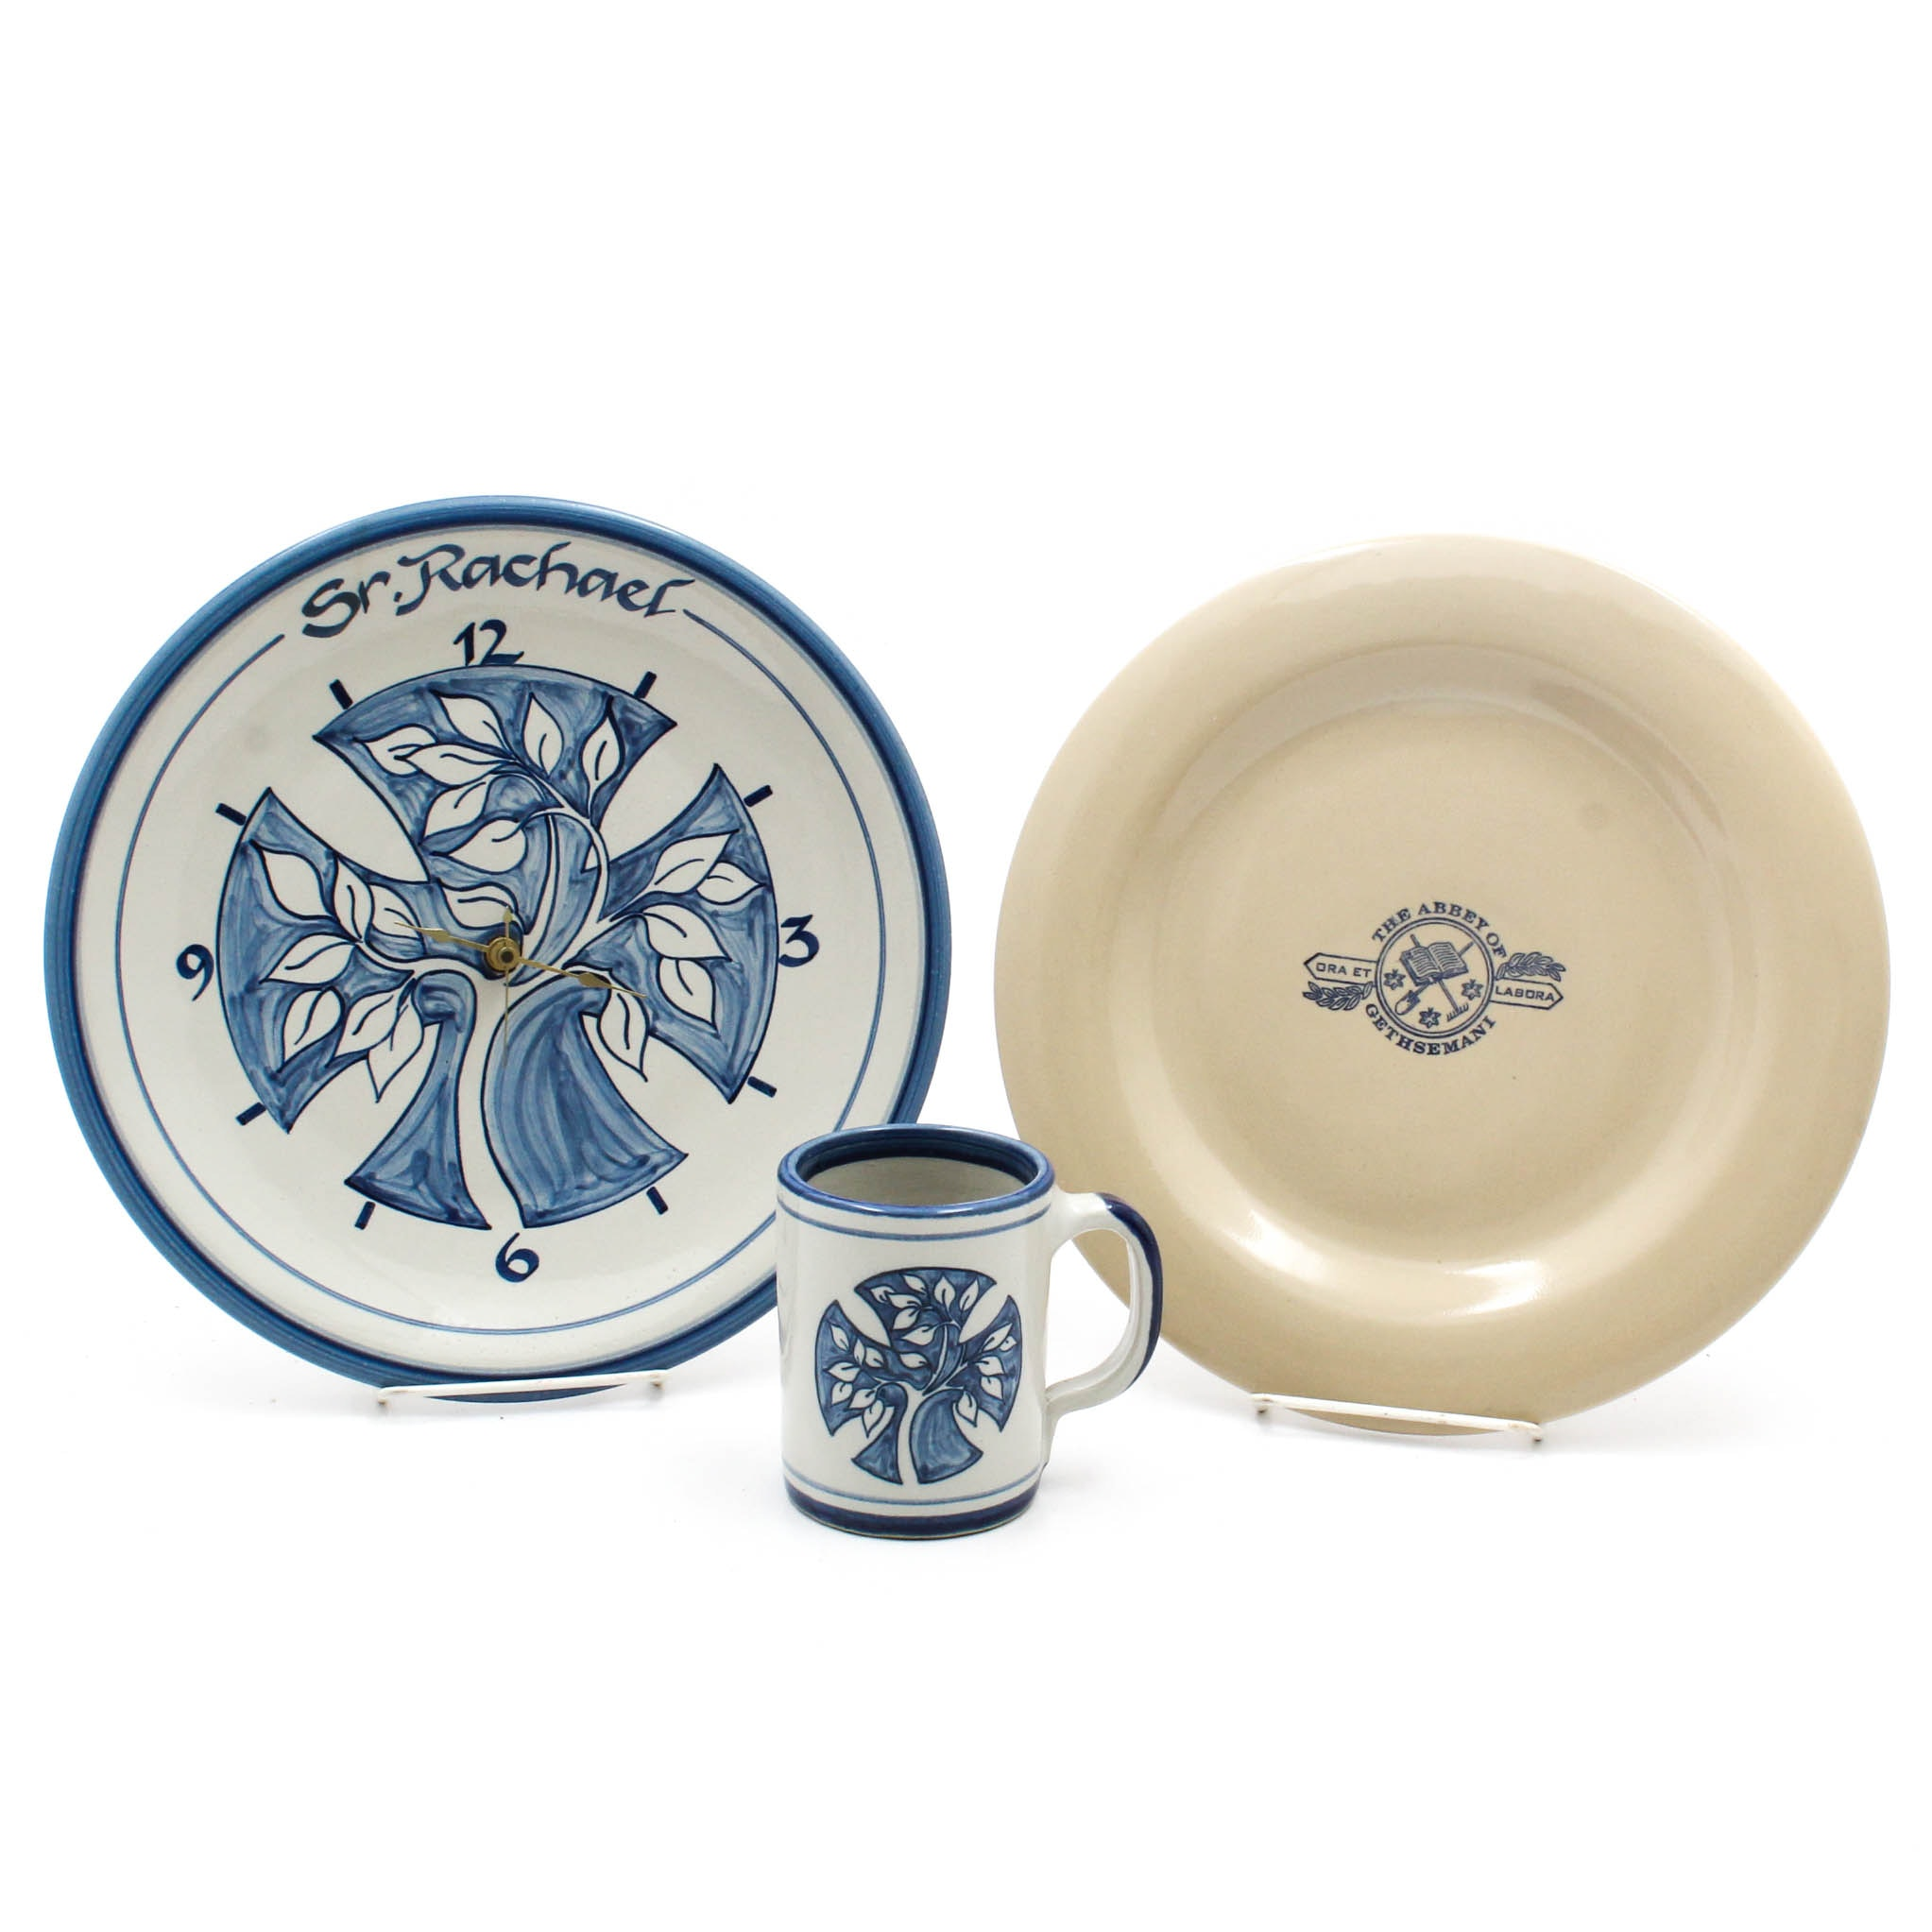 Clock, Dinner Plate, and Mug from the Abbey of Gethsemani